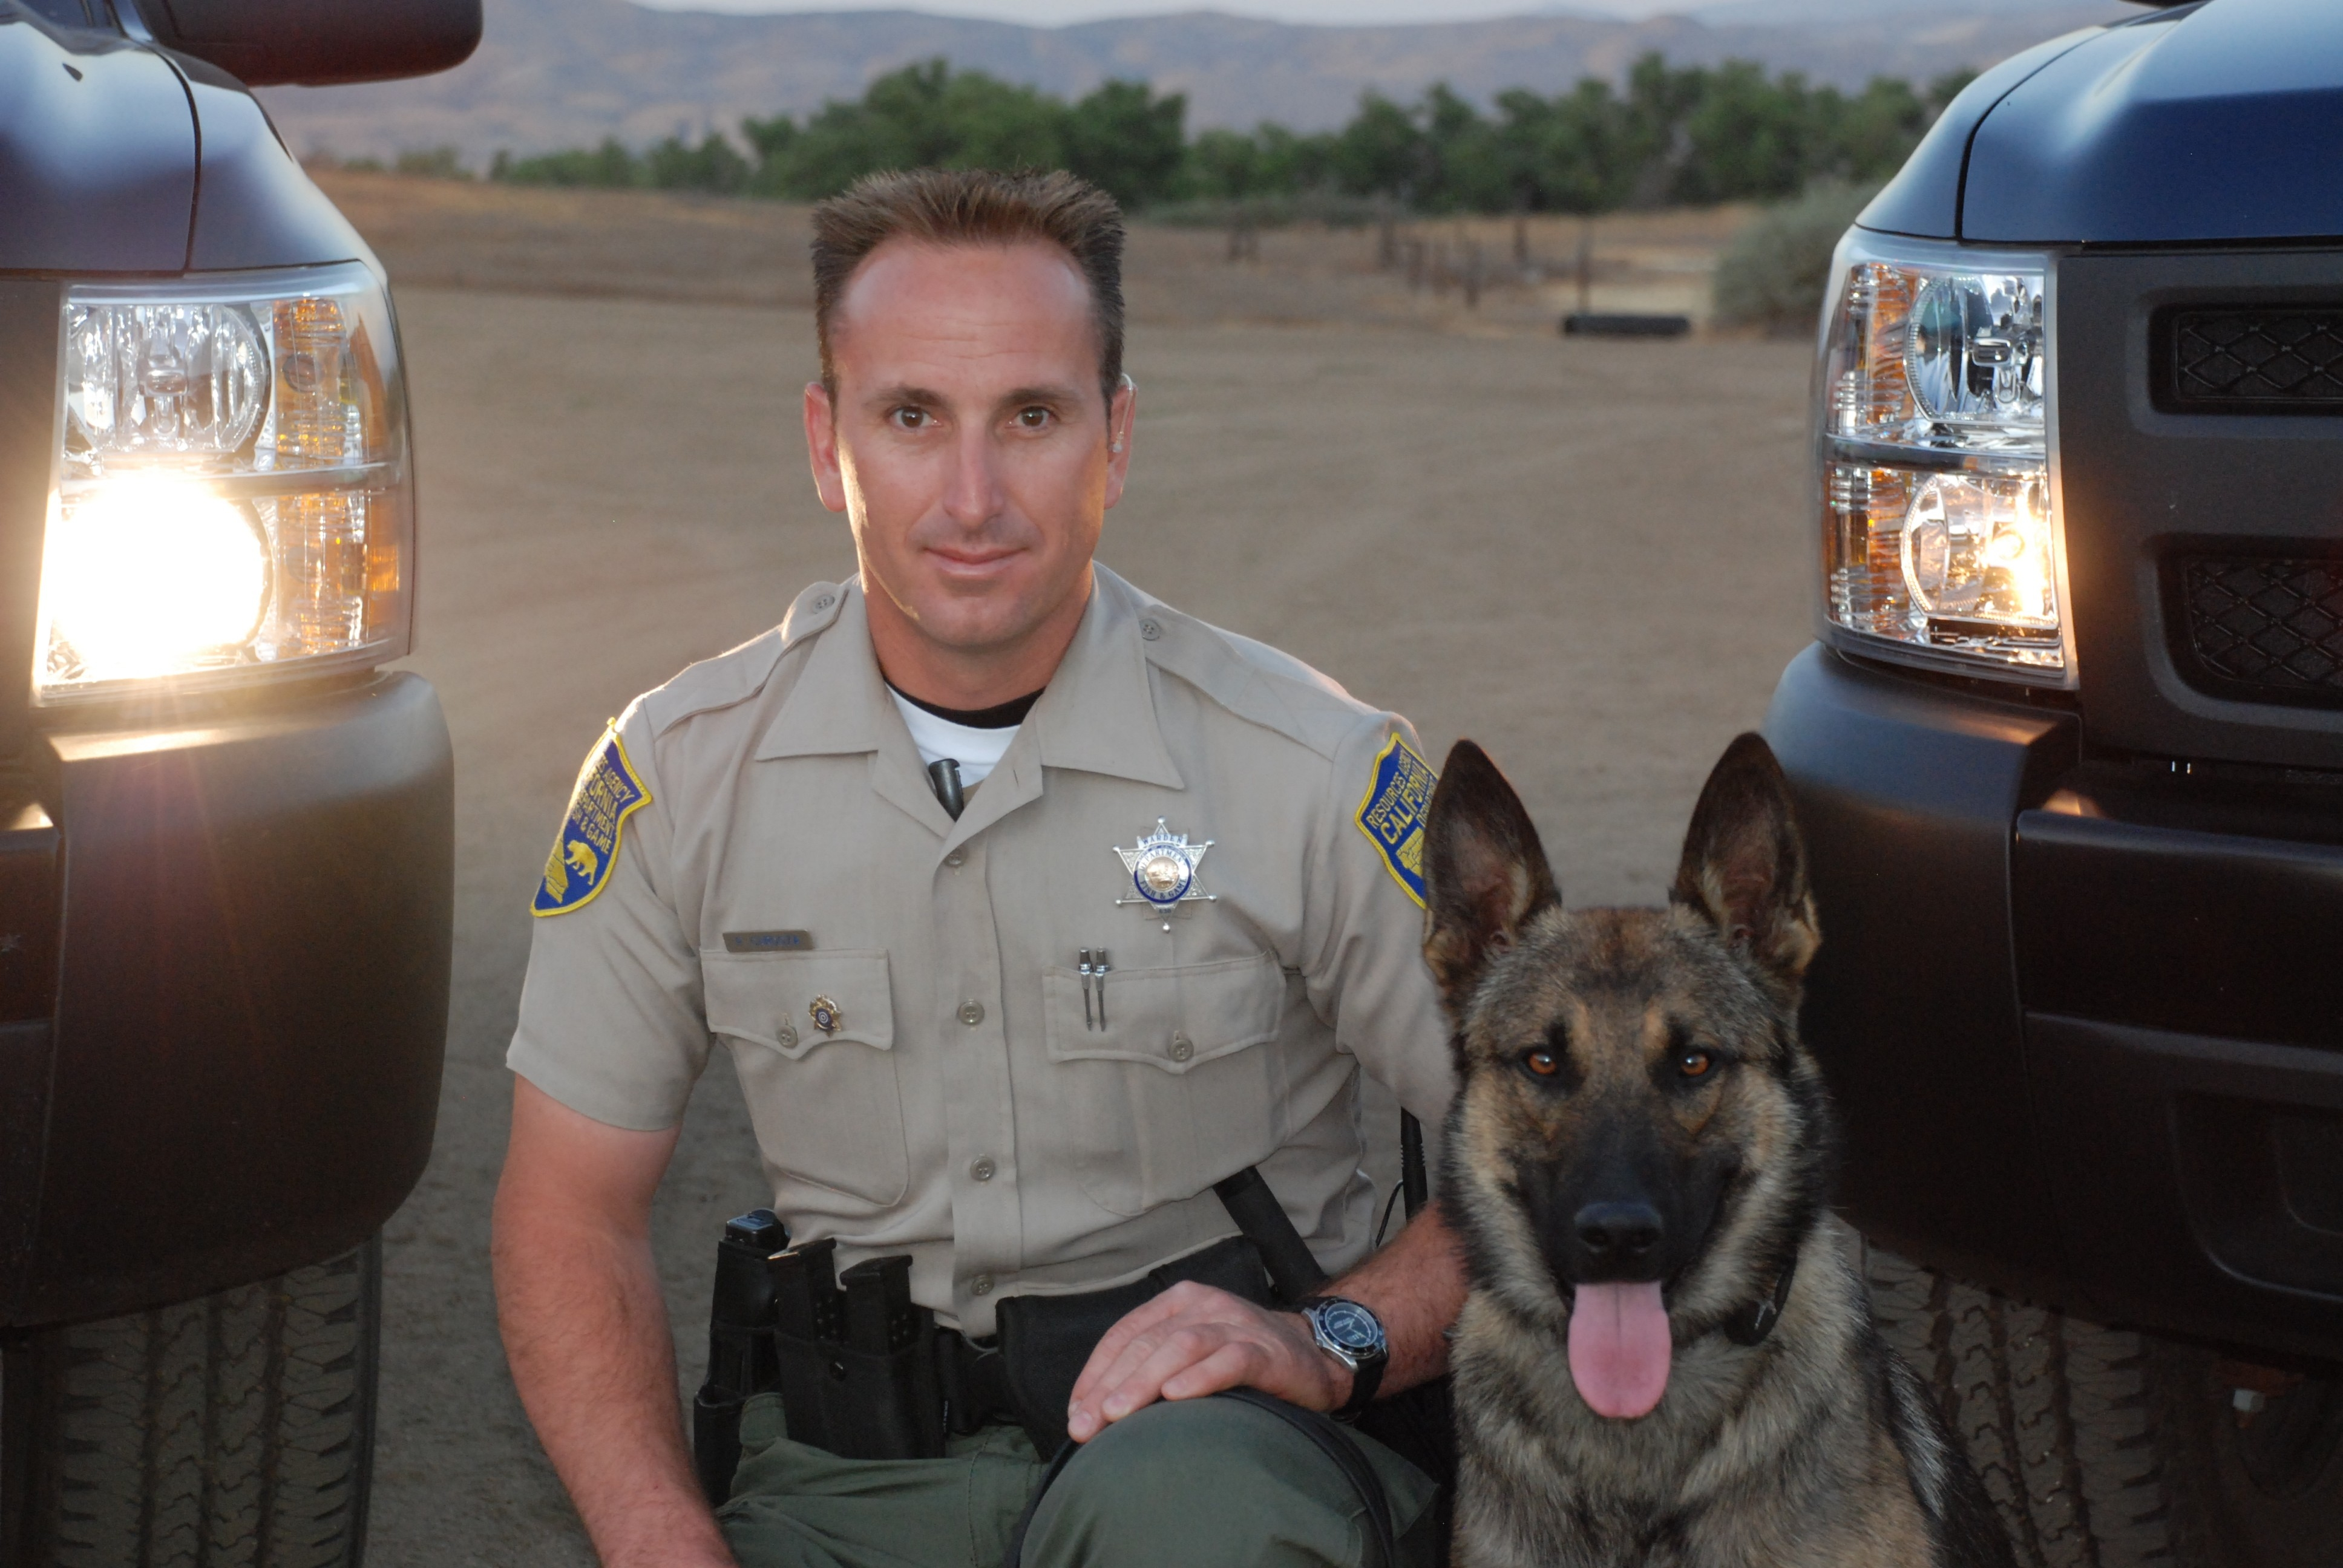 K9 armor accepts donations to give free bulletproof vests for Ca dept of fish and game